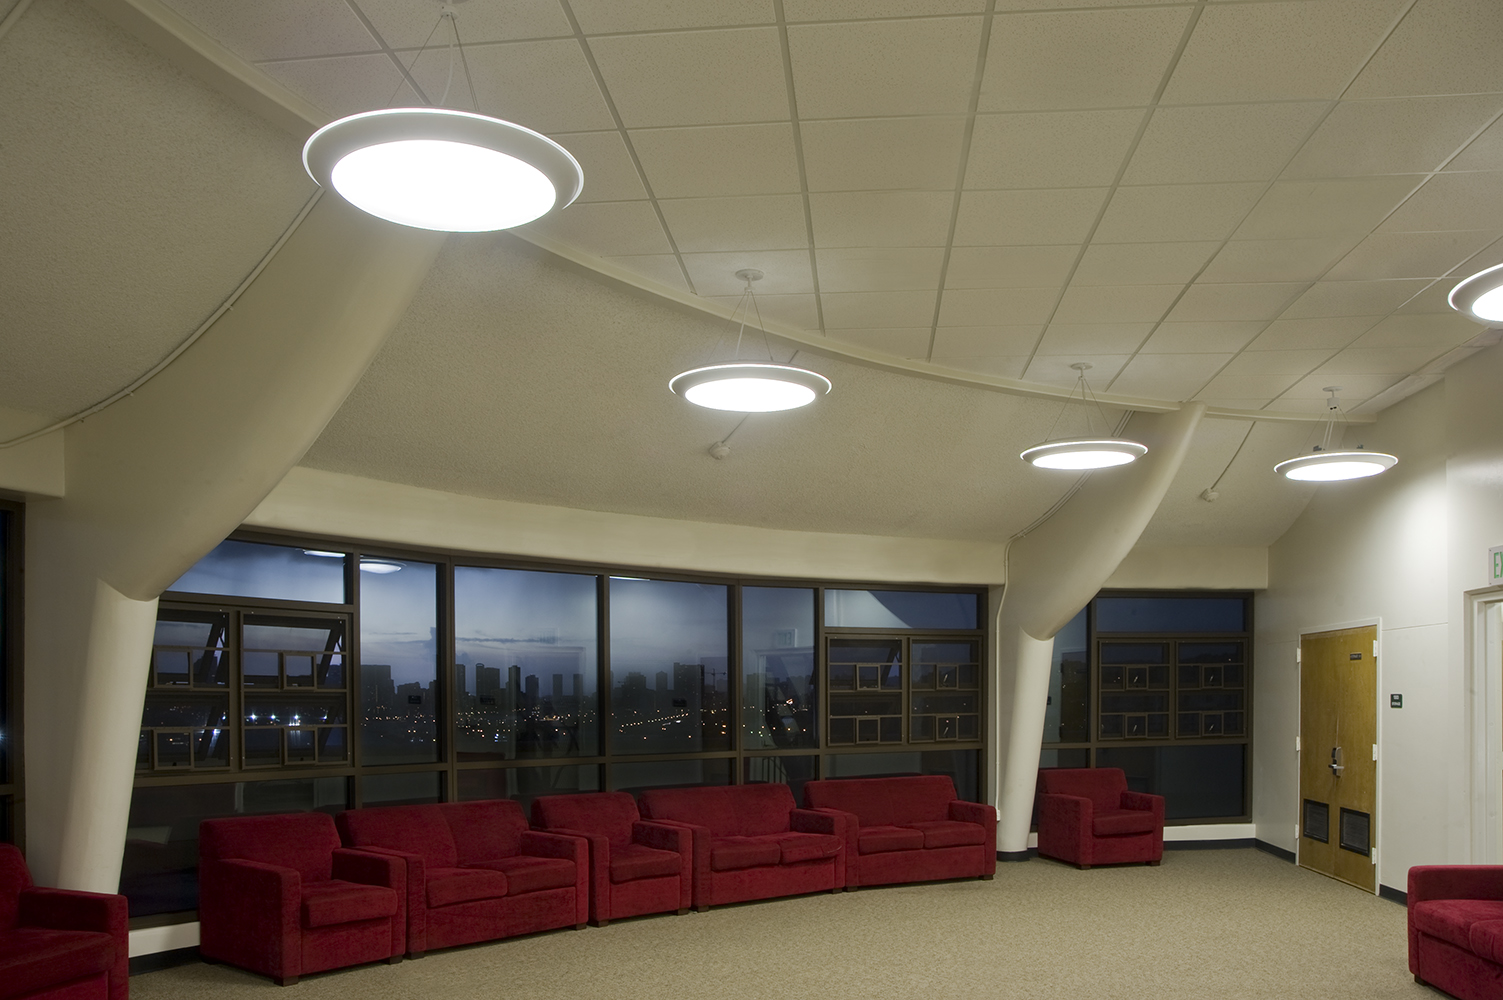 Capience pendants provide modern light for educational interior design inside a campus dormitory.